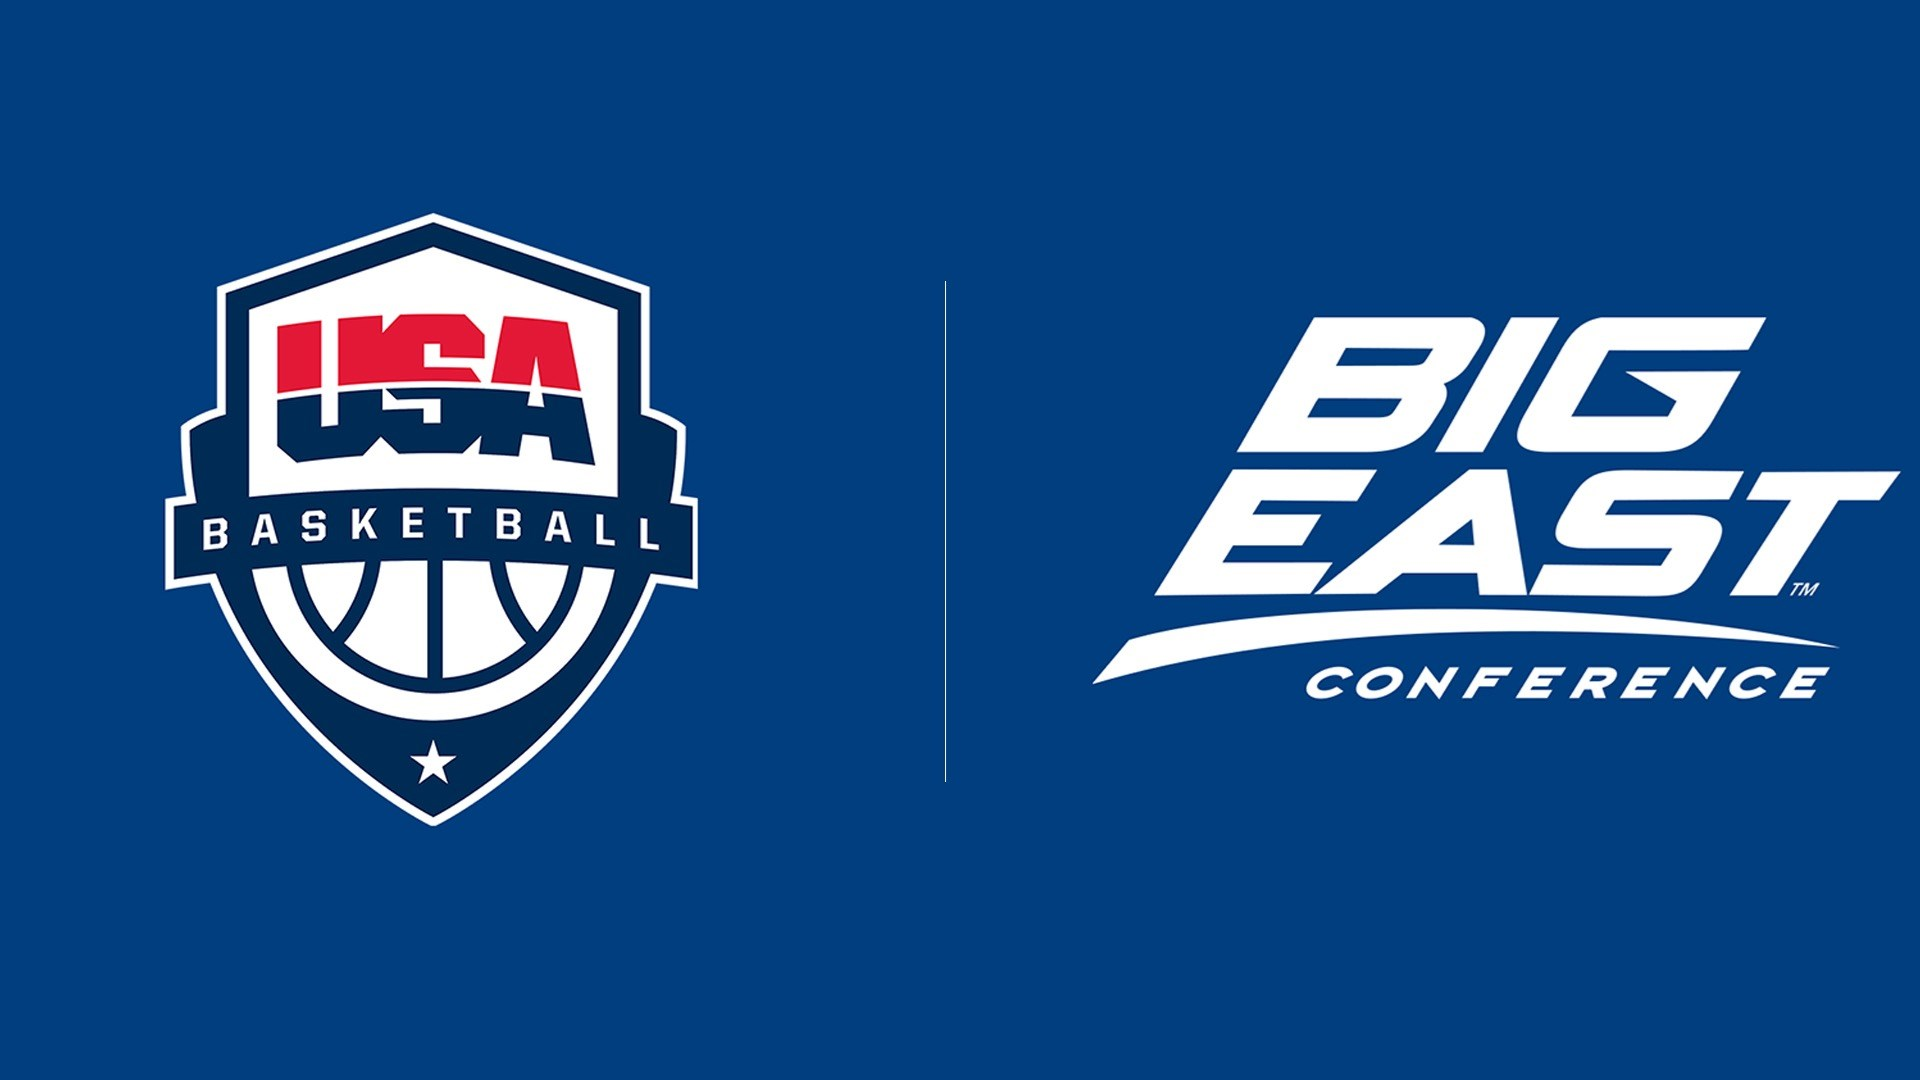 BIG EAST Conference Selected to Represent U.S. in 2019 Pan.